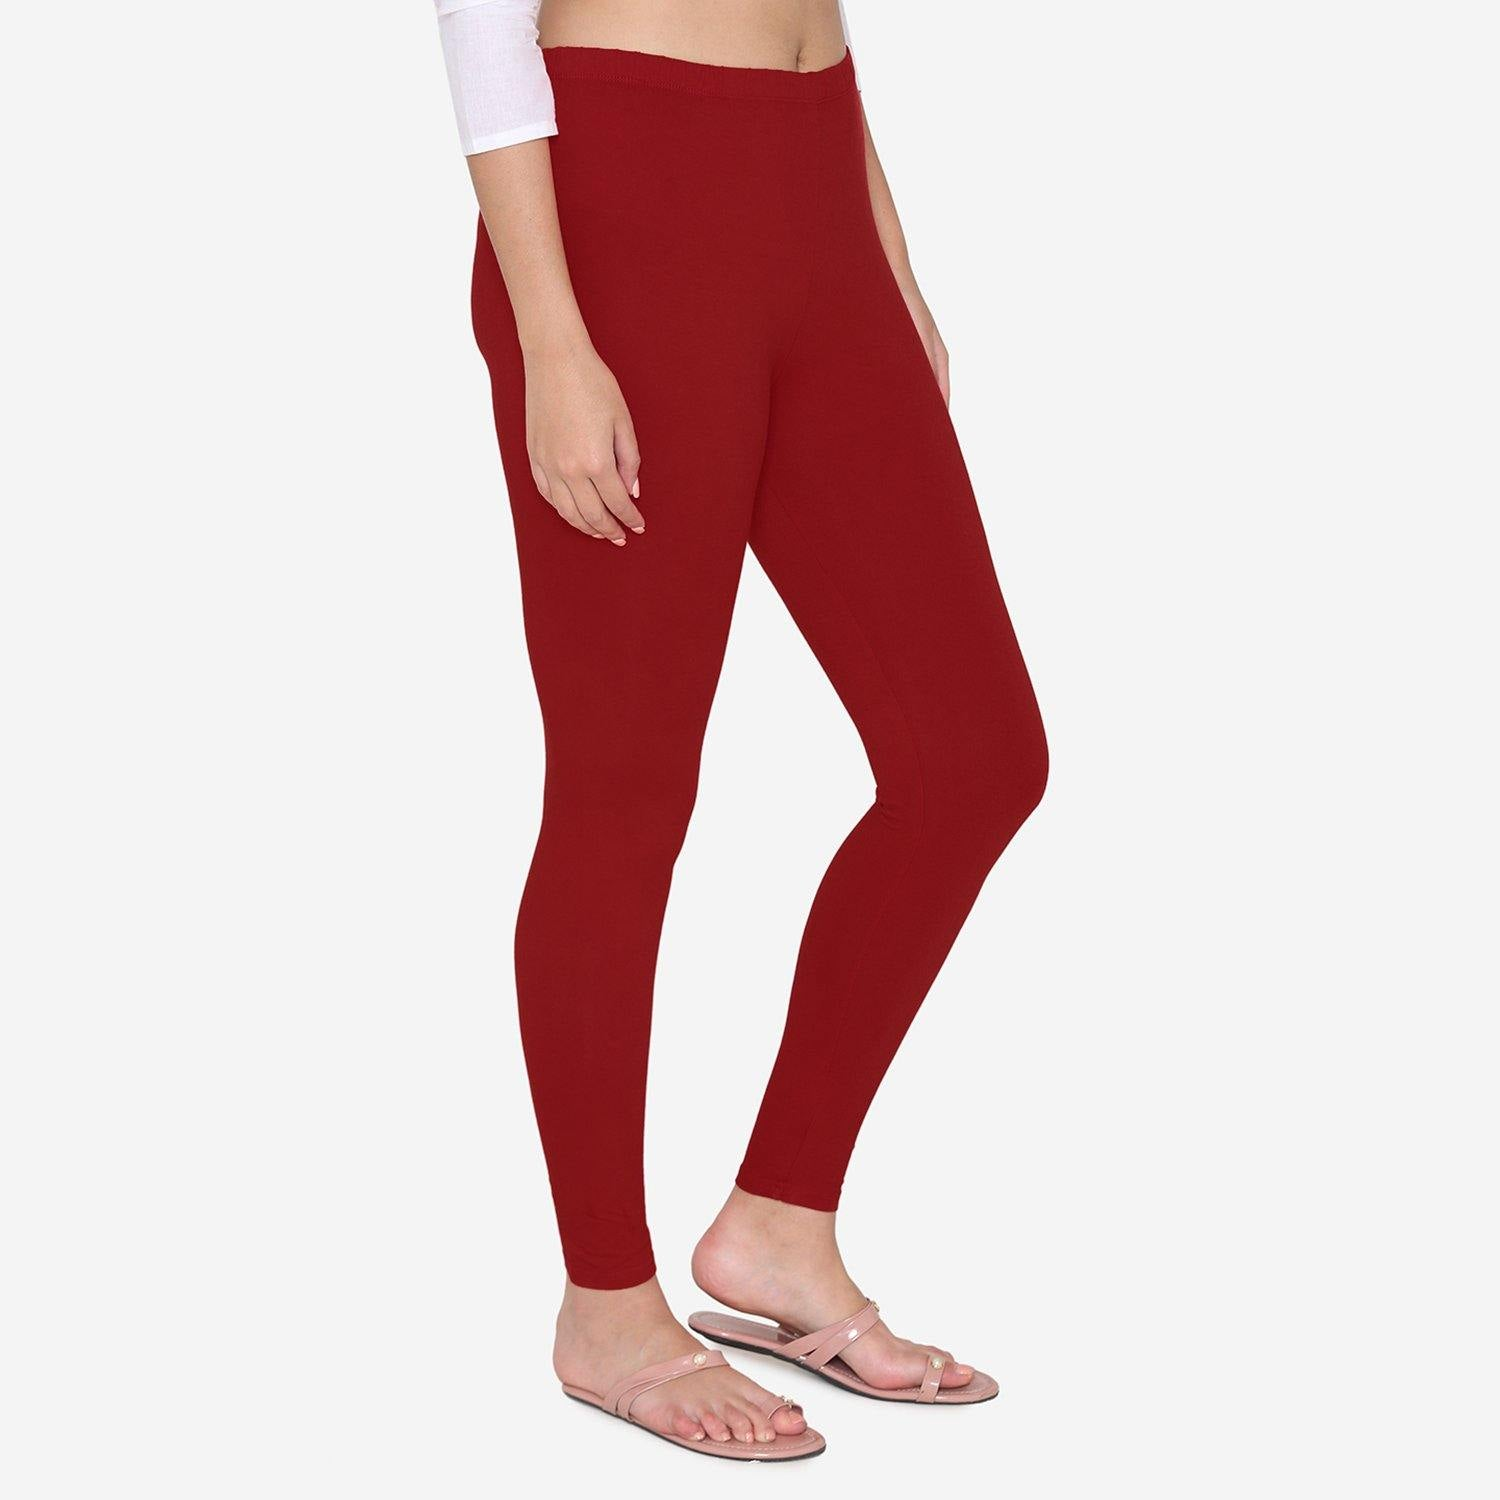 Vami Women's Cotton Stretchable Ankle Leggings -Maroon